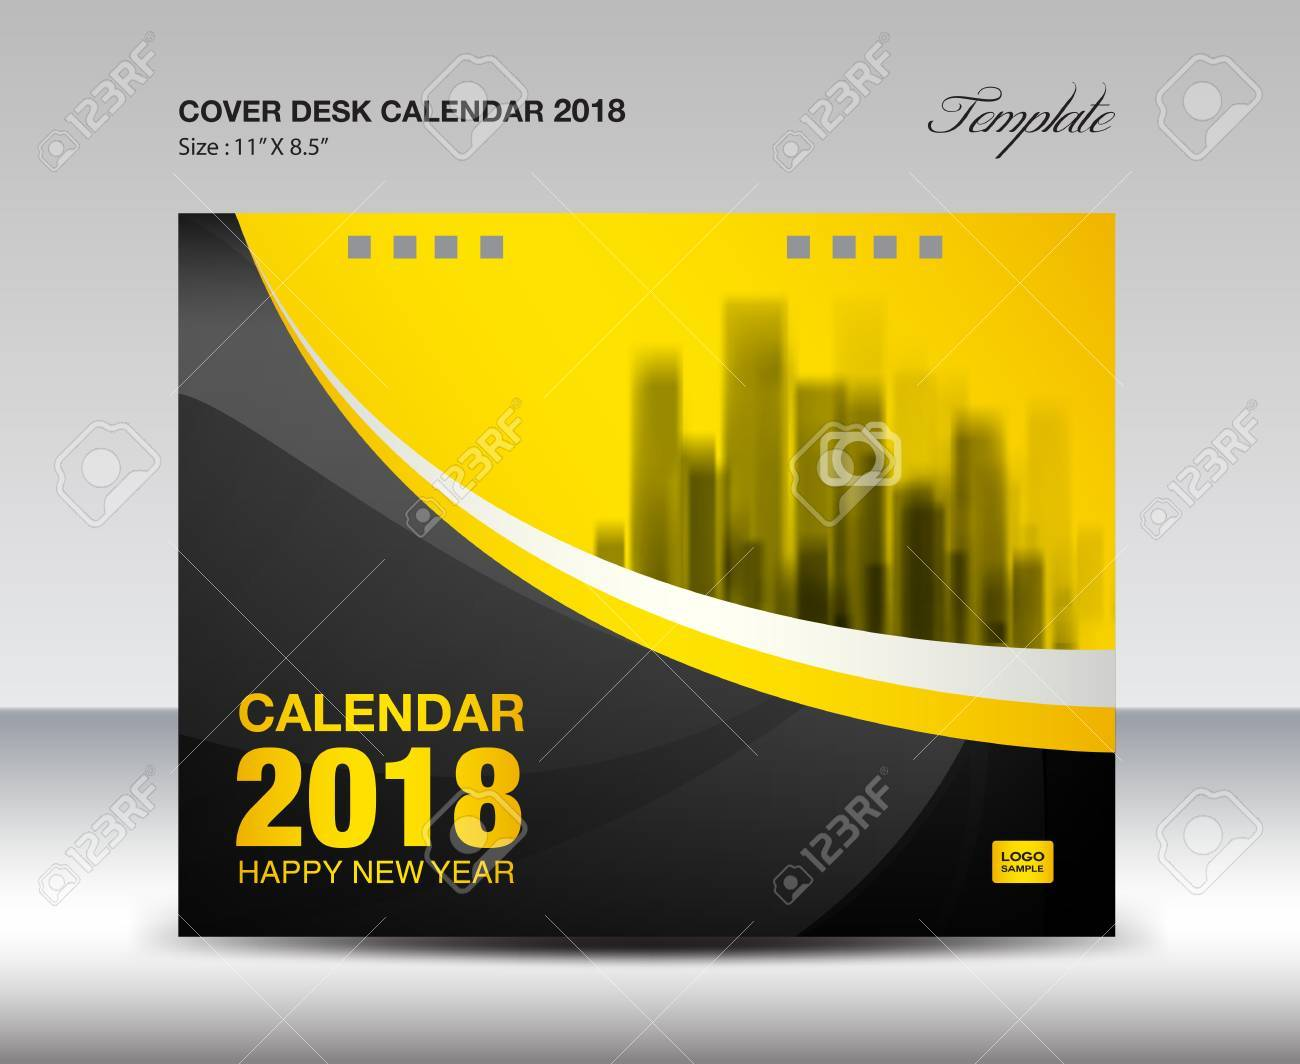 Black And Yellow Cover Desk Calendar 2018 Design Flyer Template